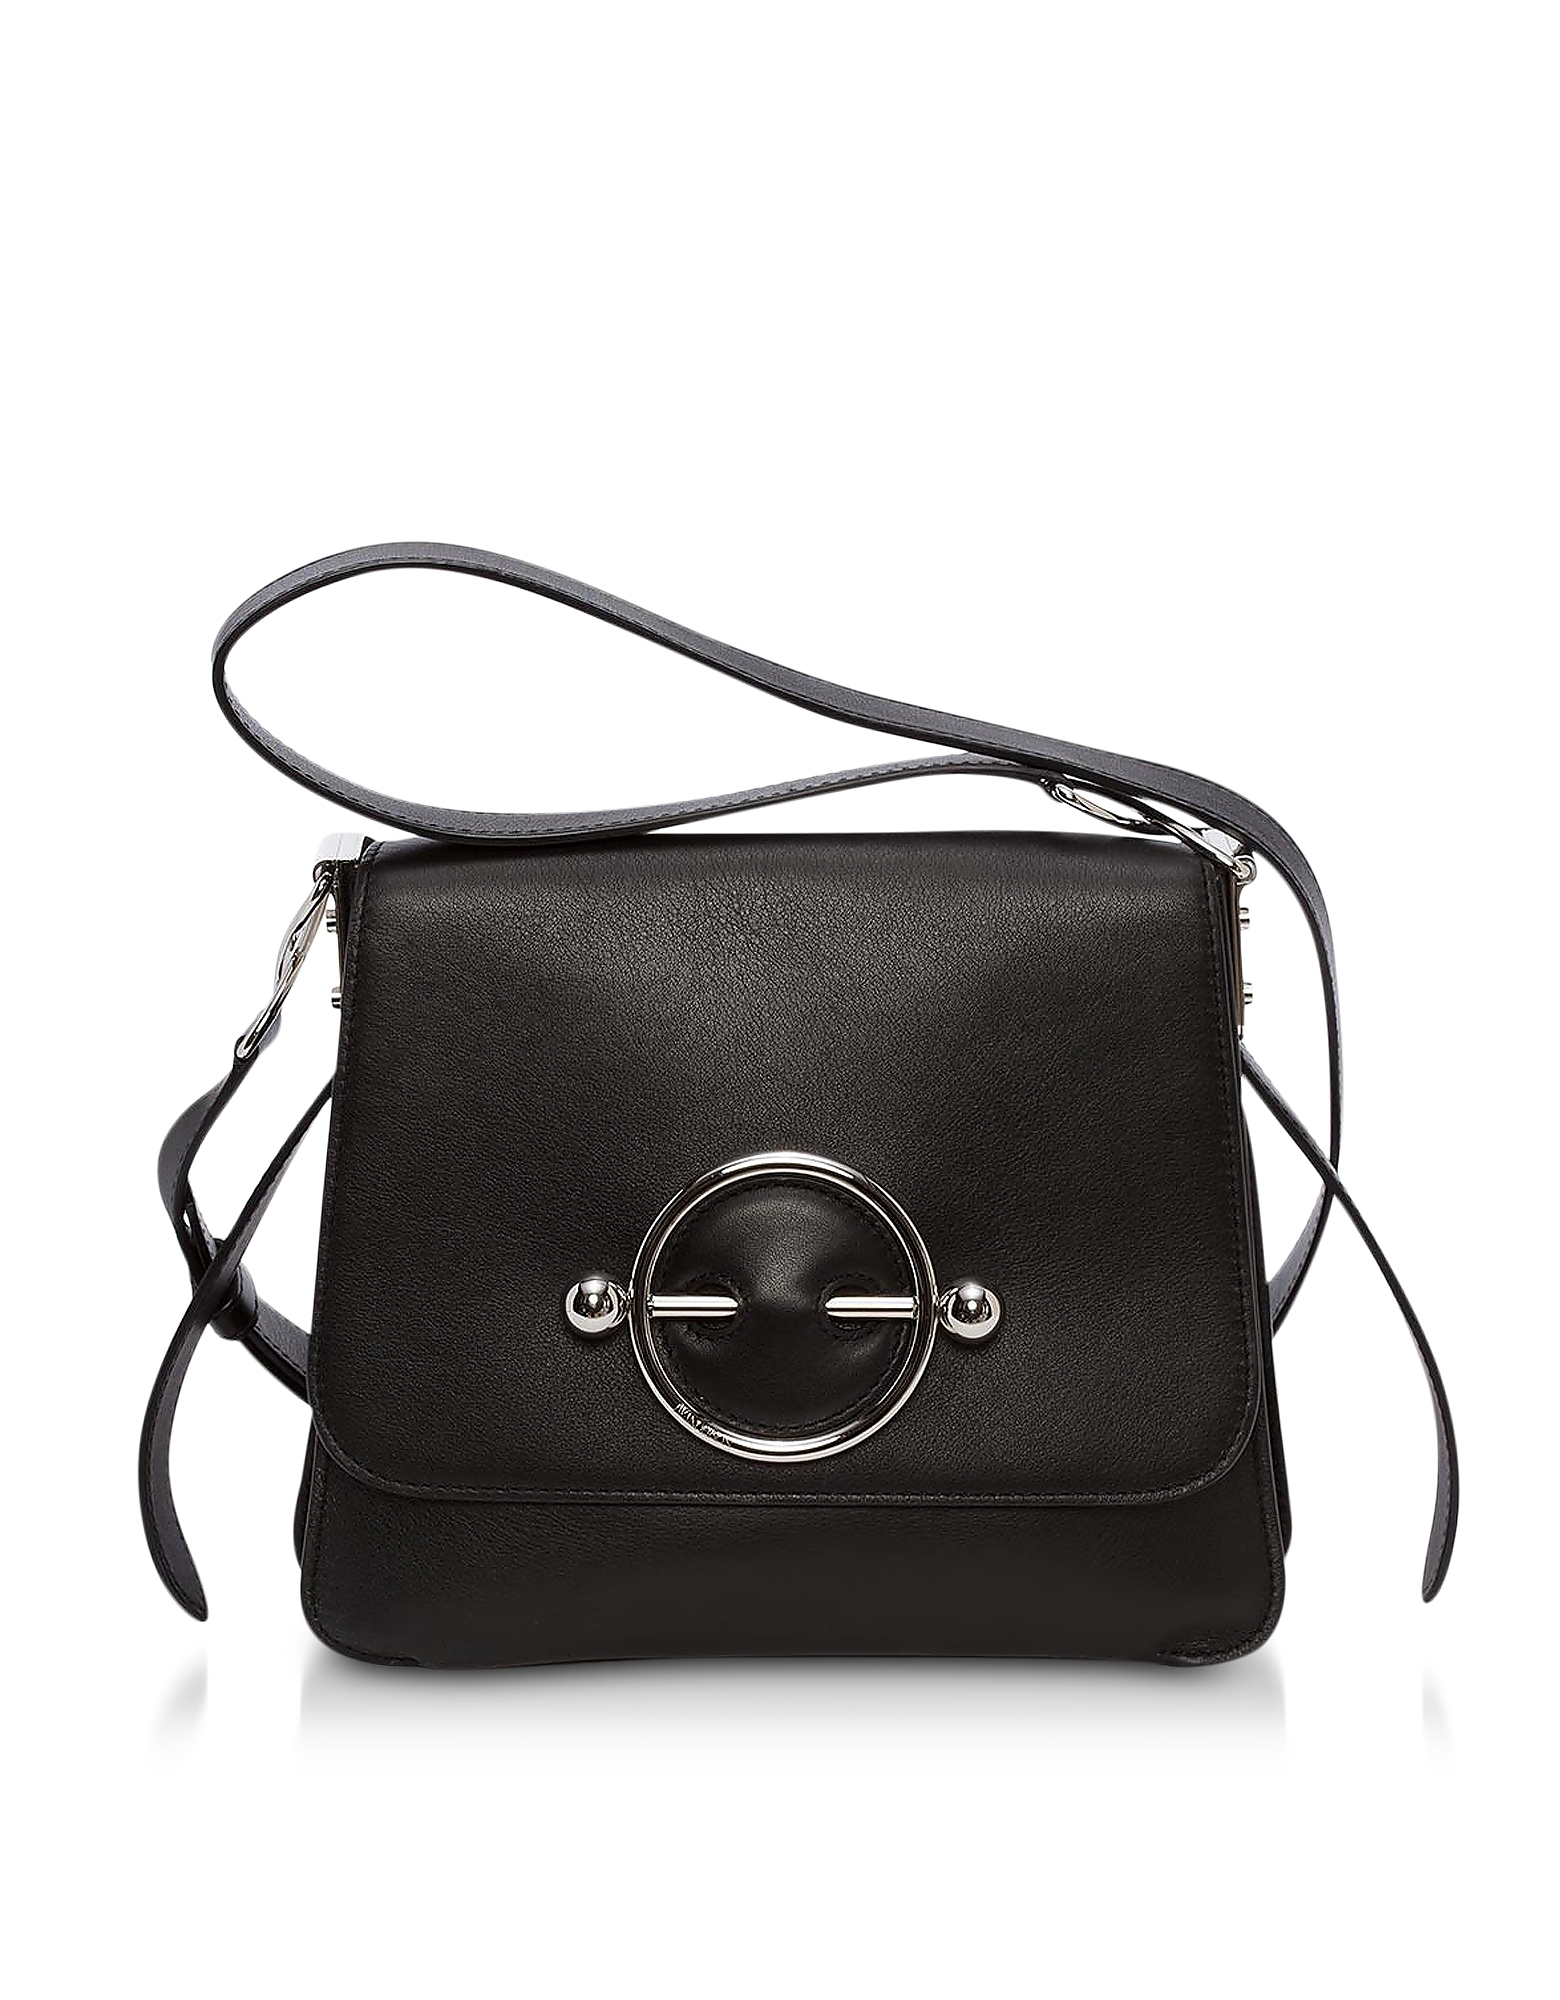 Image of JW Anderson Designer Handbags, Black Suede and Calf Leather Disc Bag